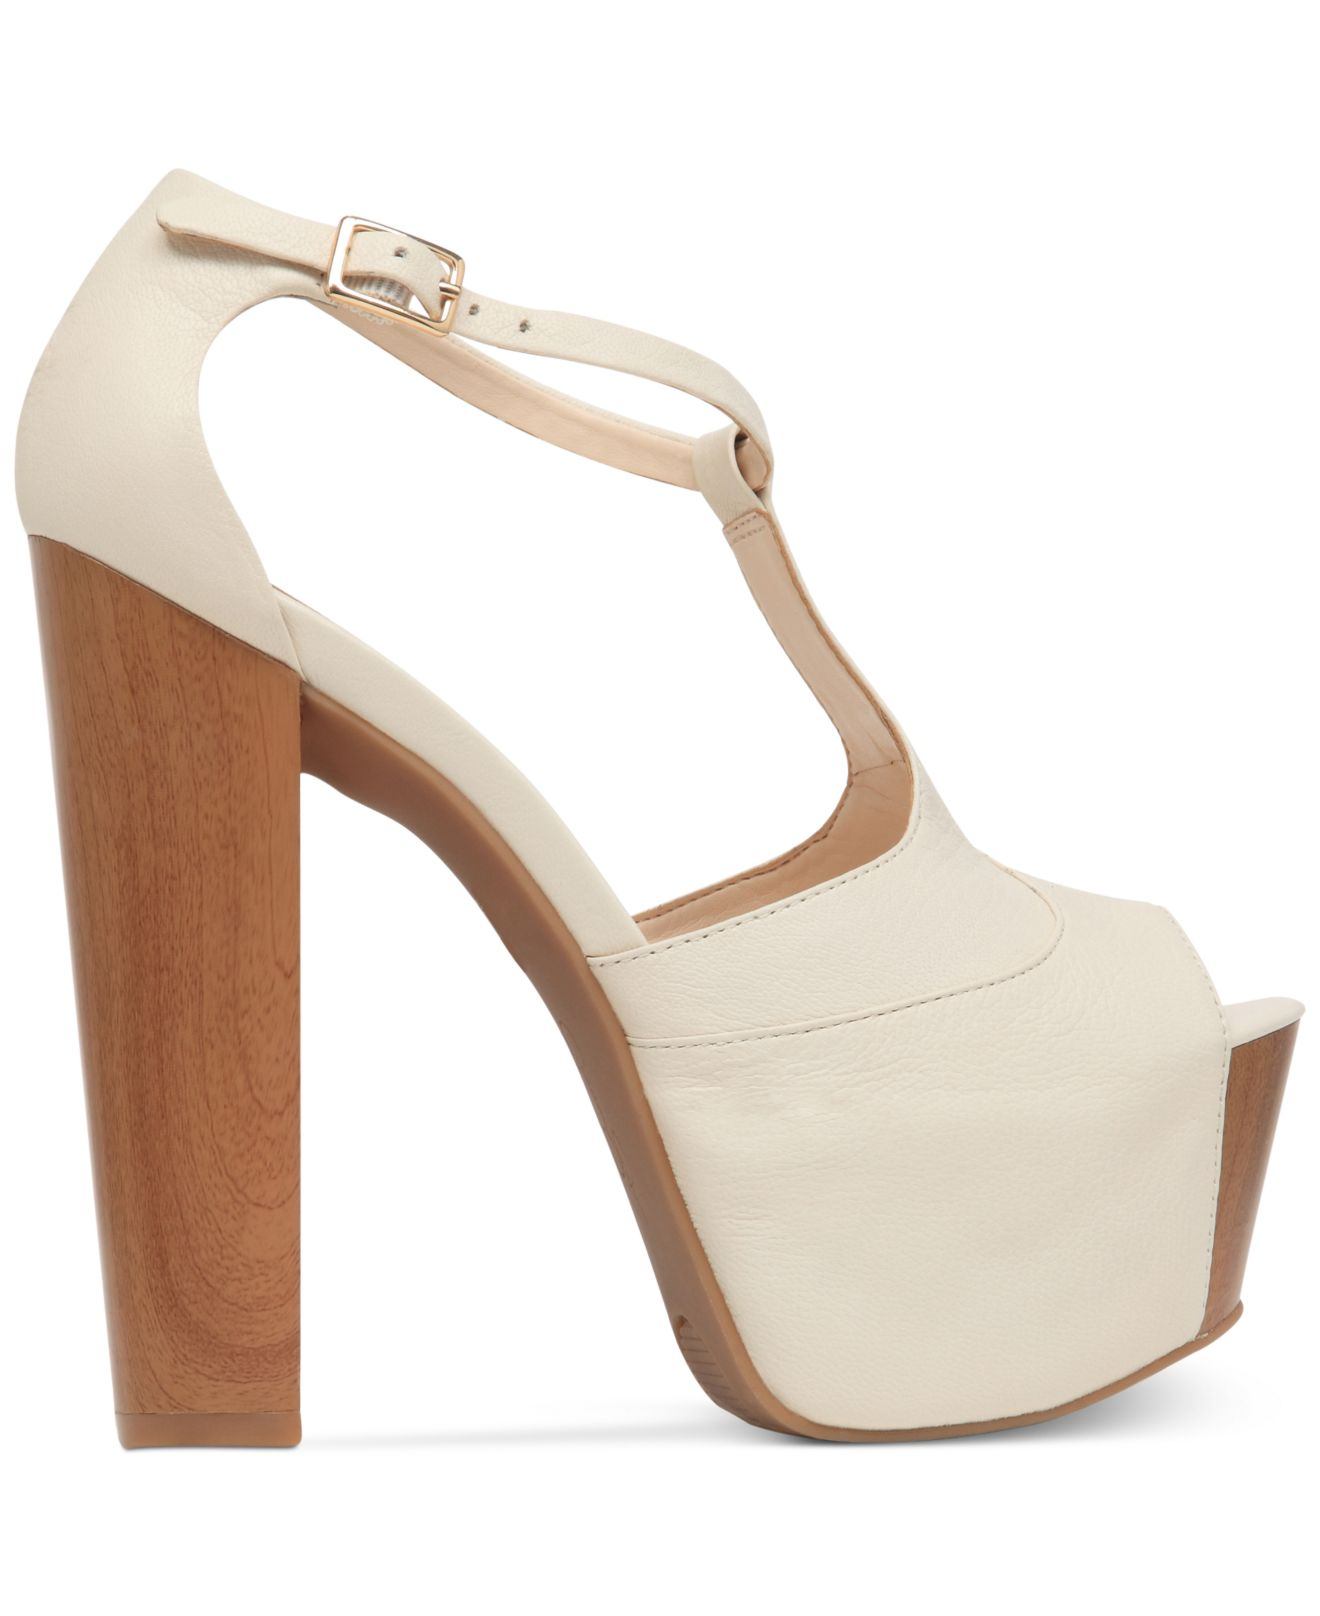 66c75c9aced Lyst - Jessica Simpson Dany T-Strap Platform Sandals in White